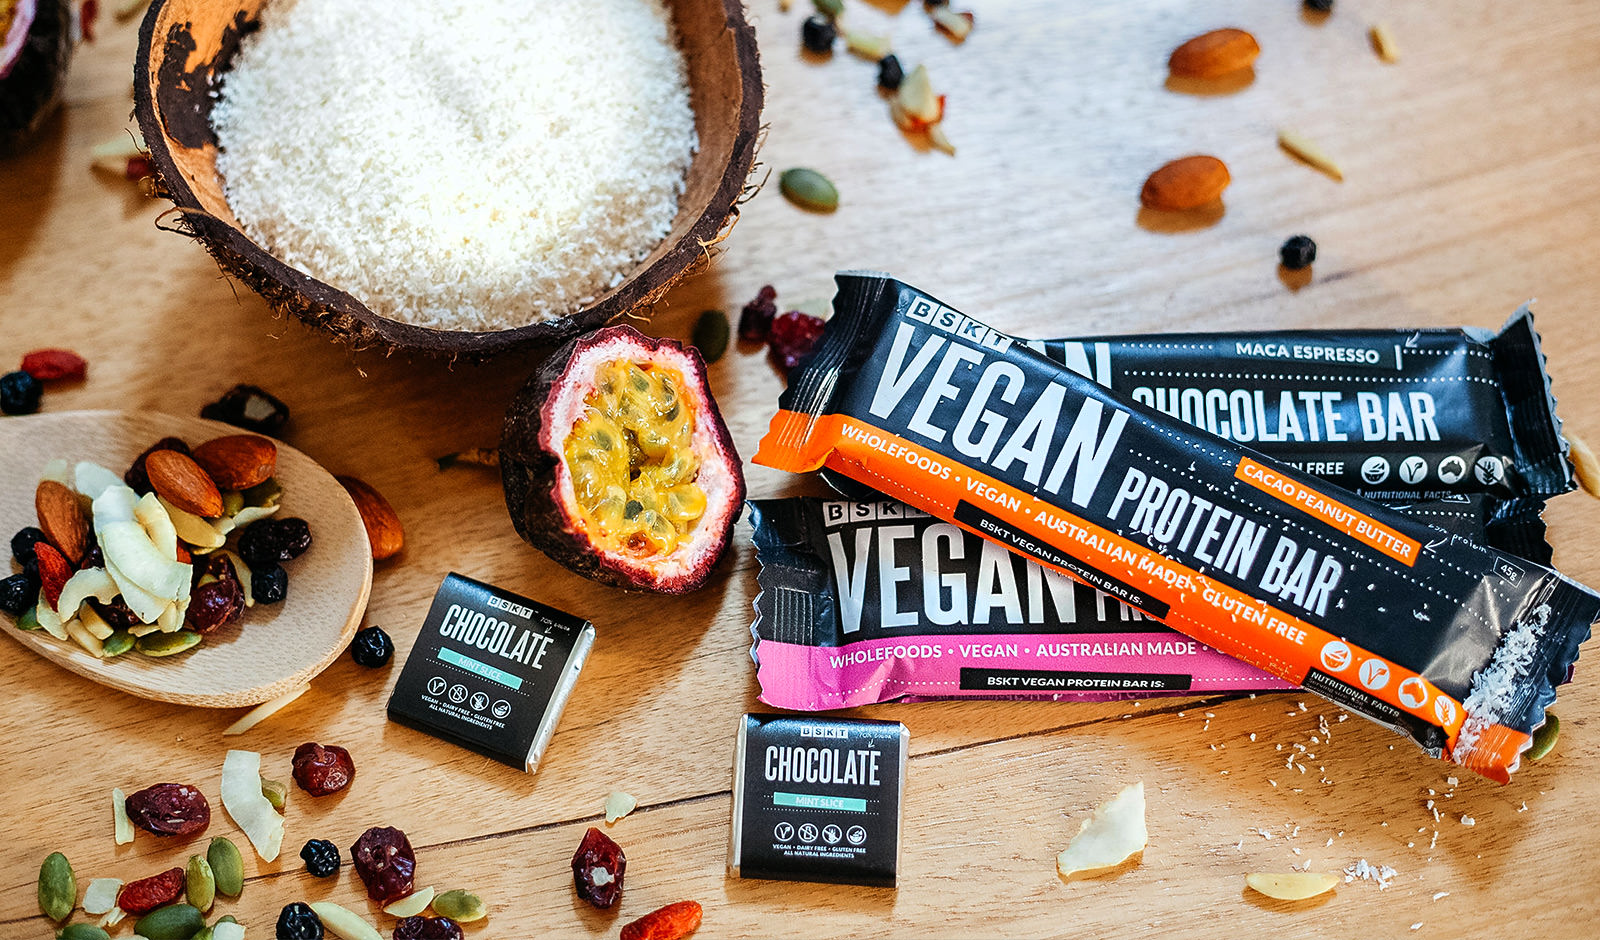 An image of protein bars, passionfruit and coconut